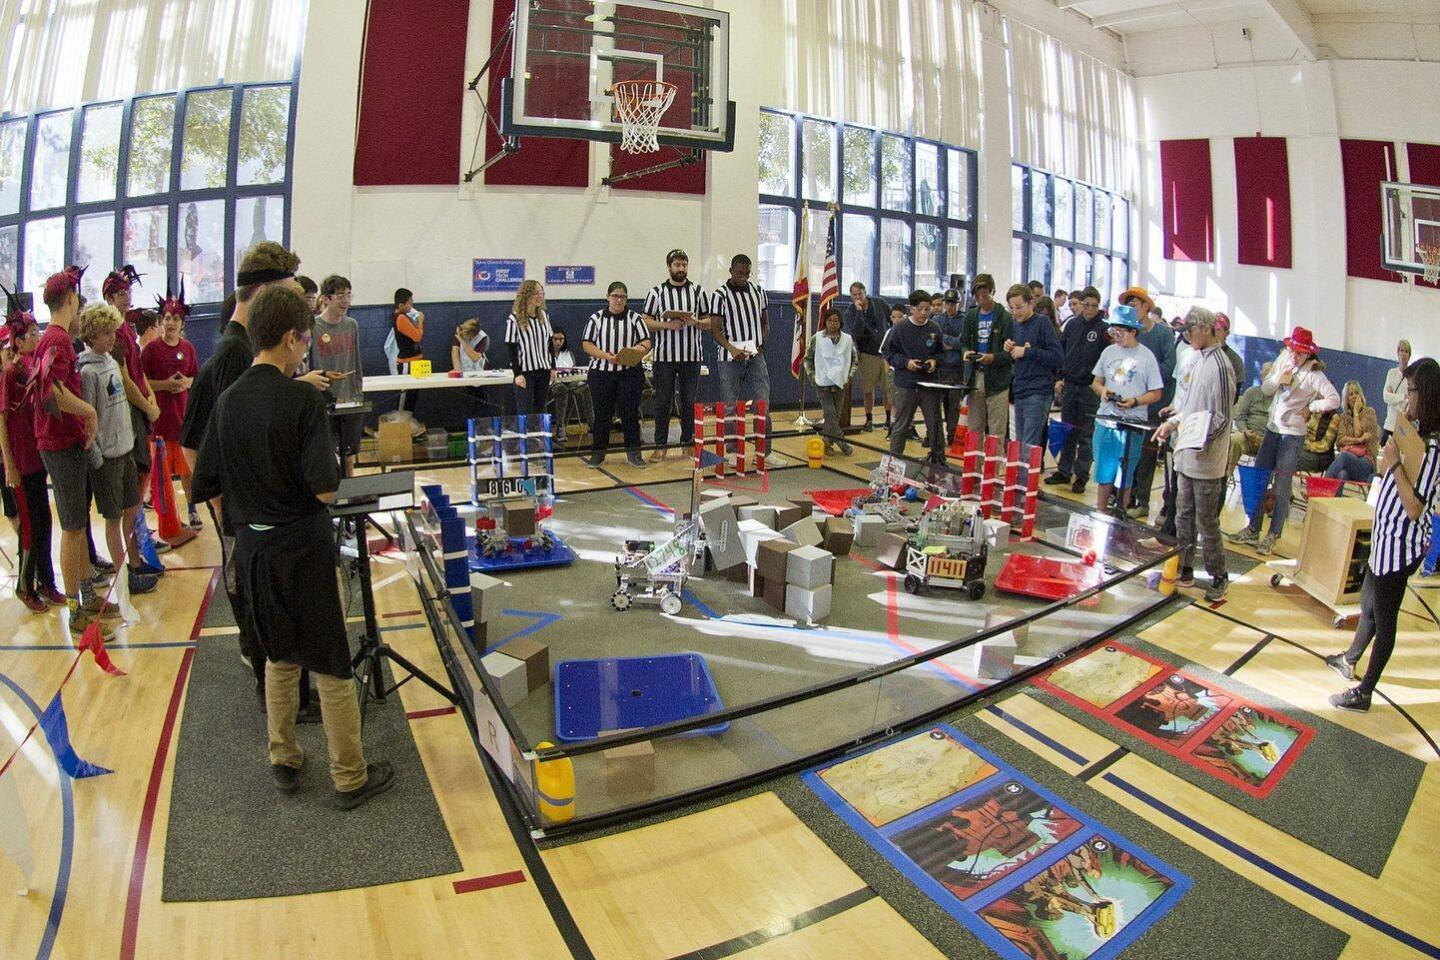 R. Roger Rowe Middle School hosts FTC Robotics Tournaments